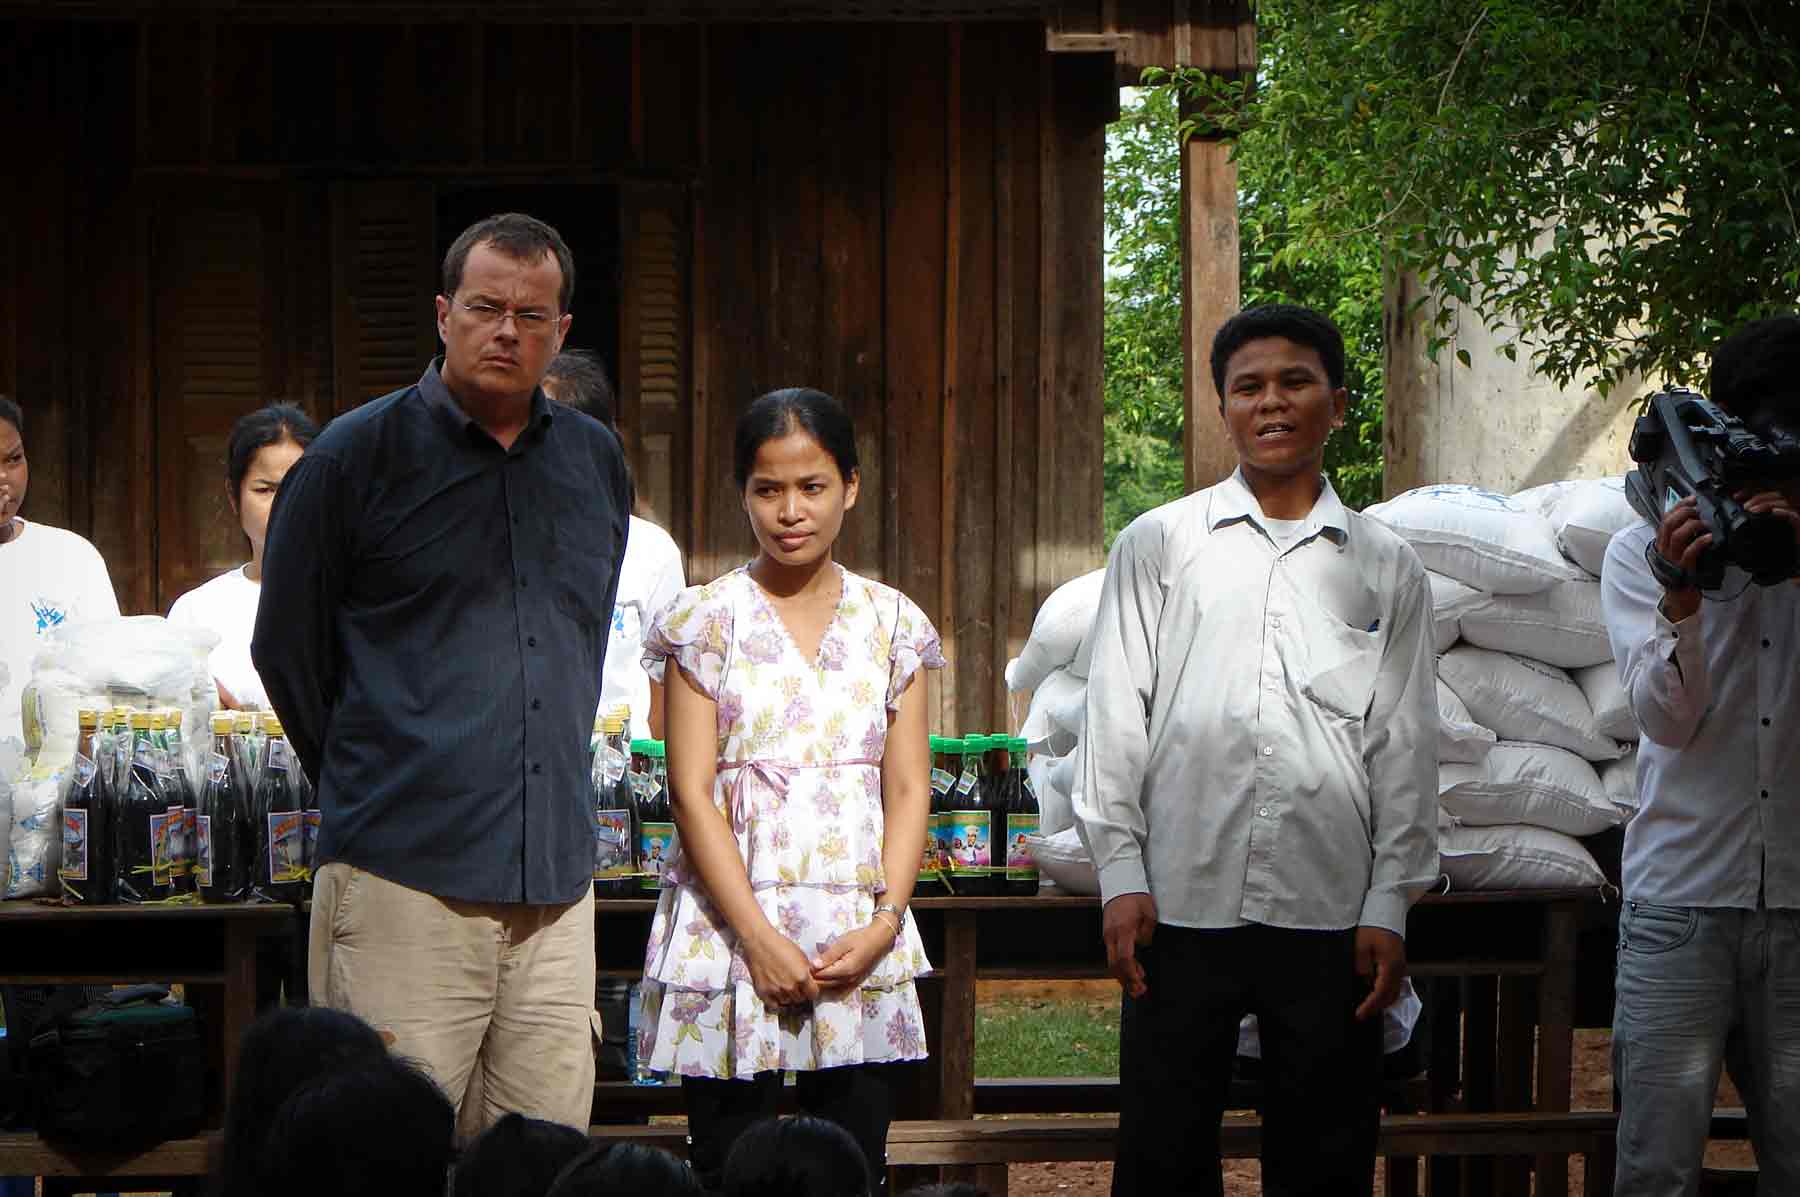 Patrik Roux and his wife Theavy Bun during a humanitarian action in a public school in Cambodia with many very poor children.